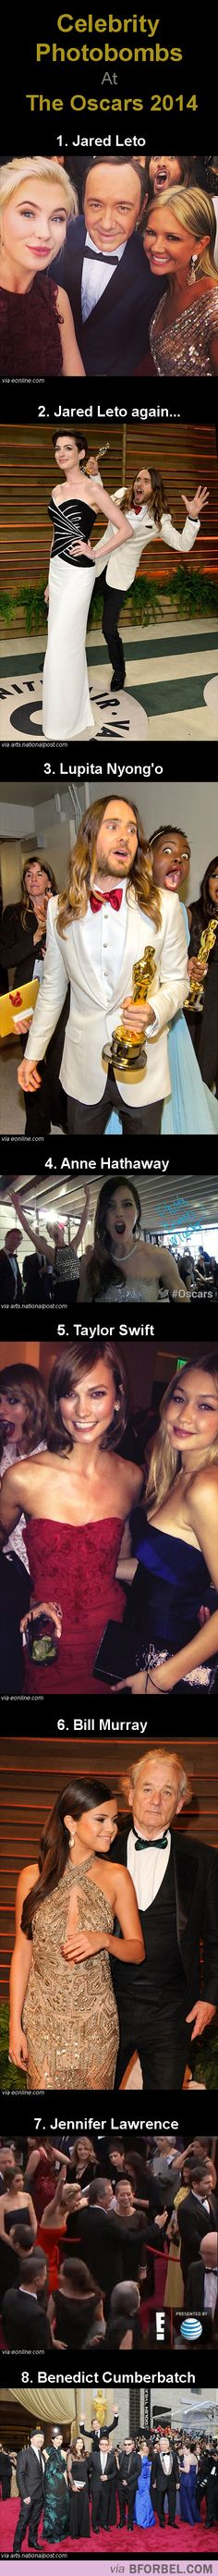 8 Epic Celebrity Photobombs At The Oscars 2014…